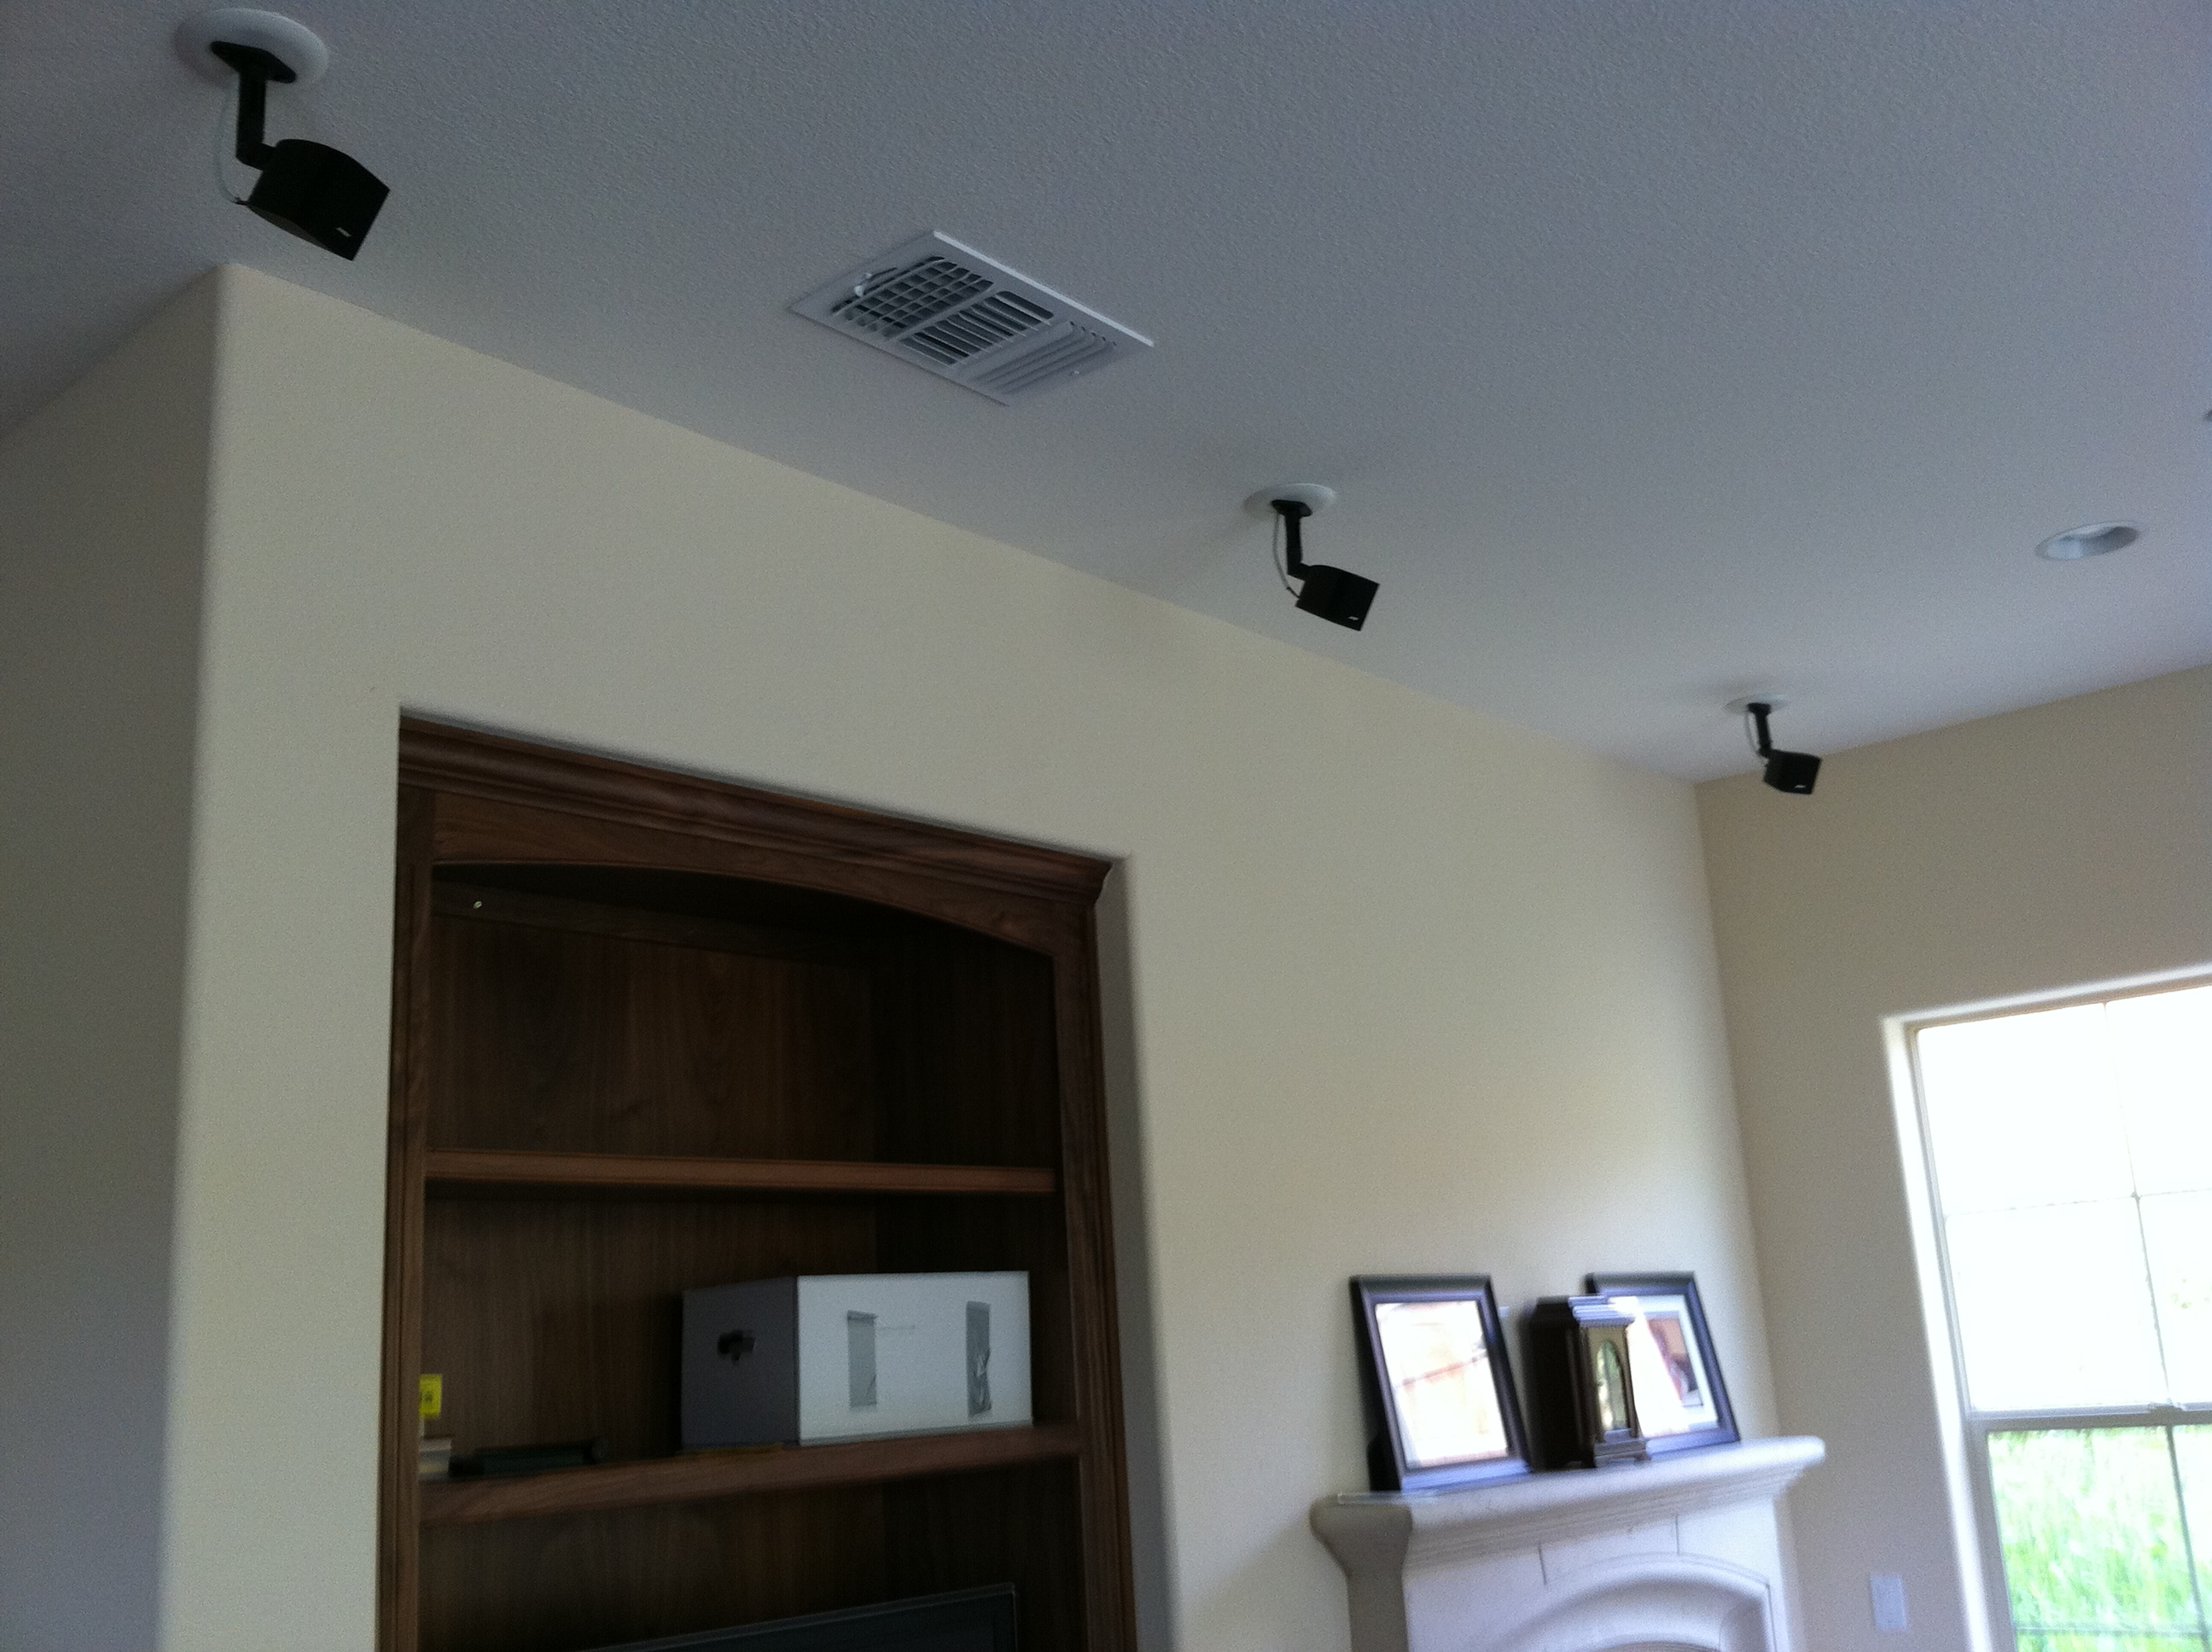 Bose Mw Home Entertainment Wiring Lifestyle Diagram Satellite Speakers Installed In Ceiling